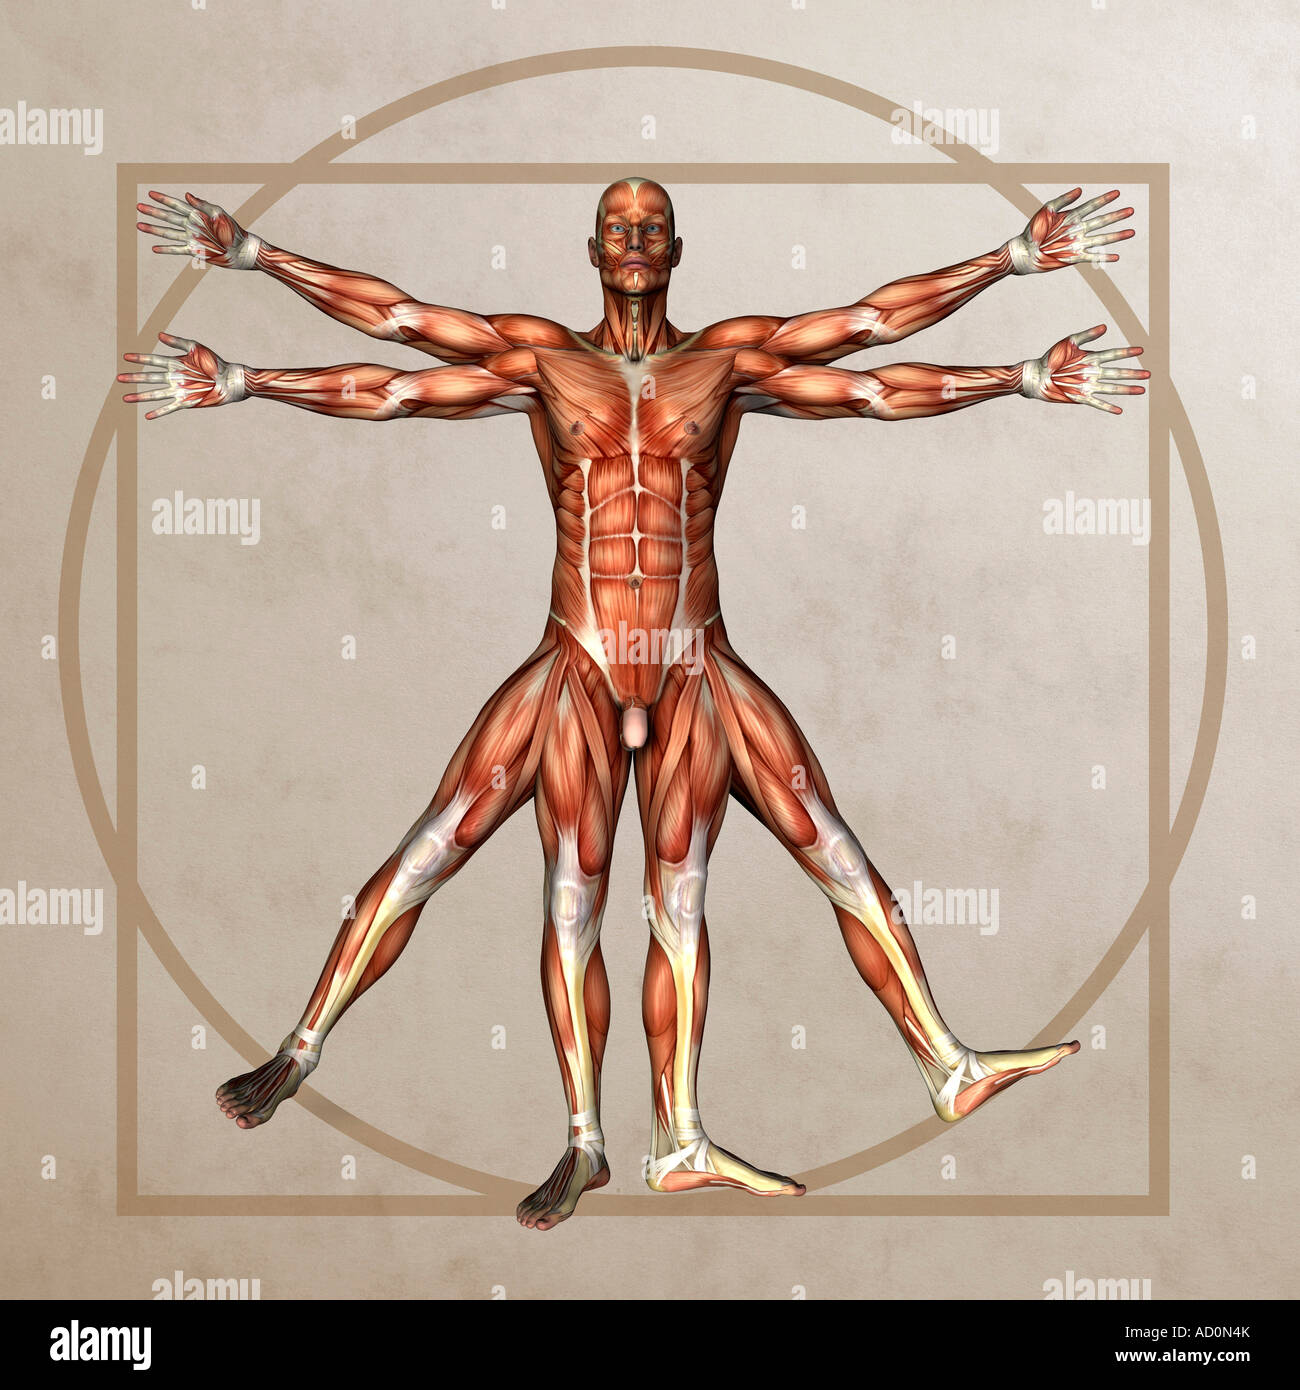 anatomy graphic in the style of lenoardo davincis Vitruvian Man ...